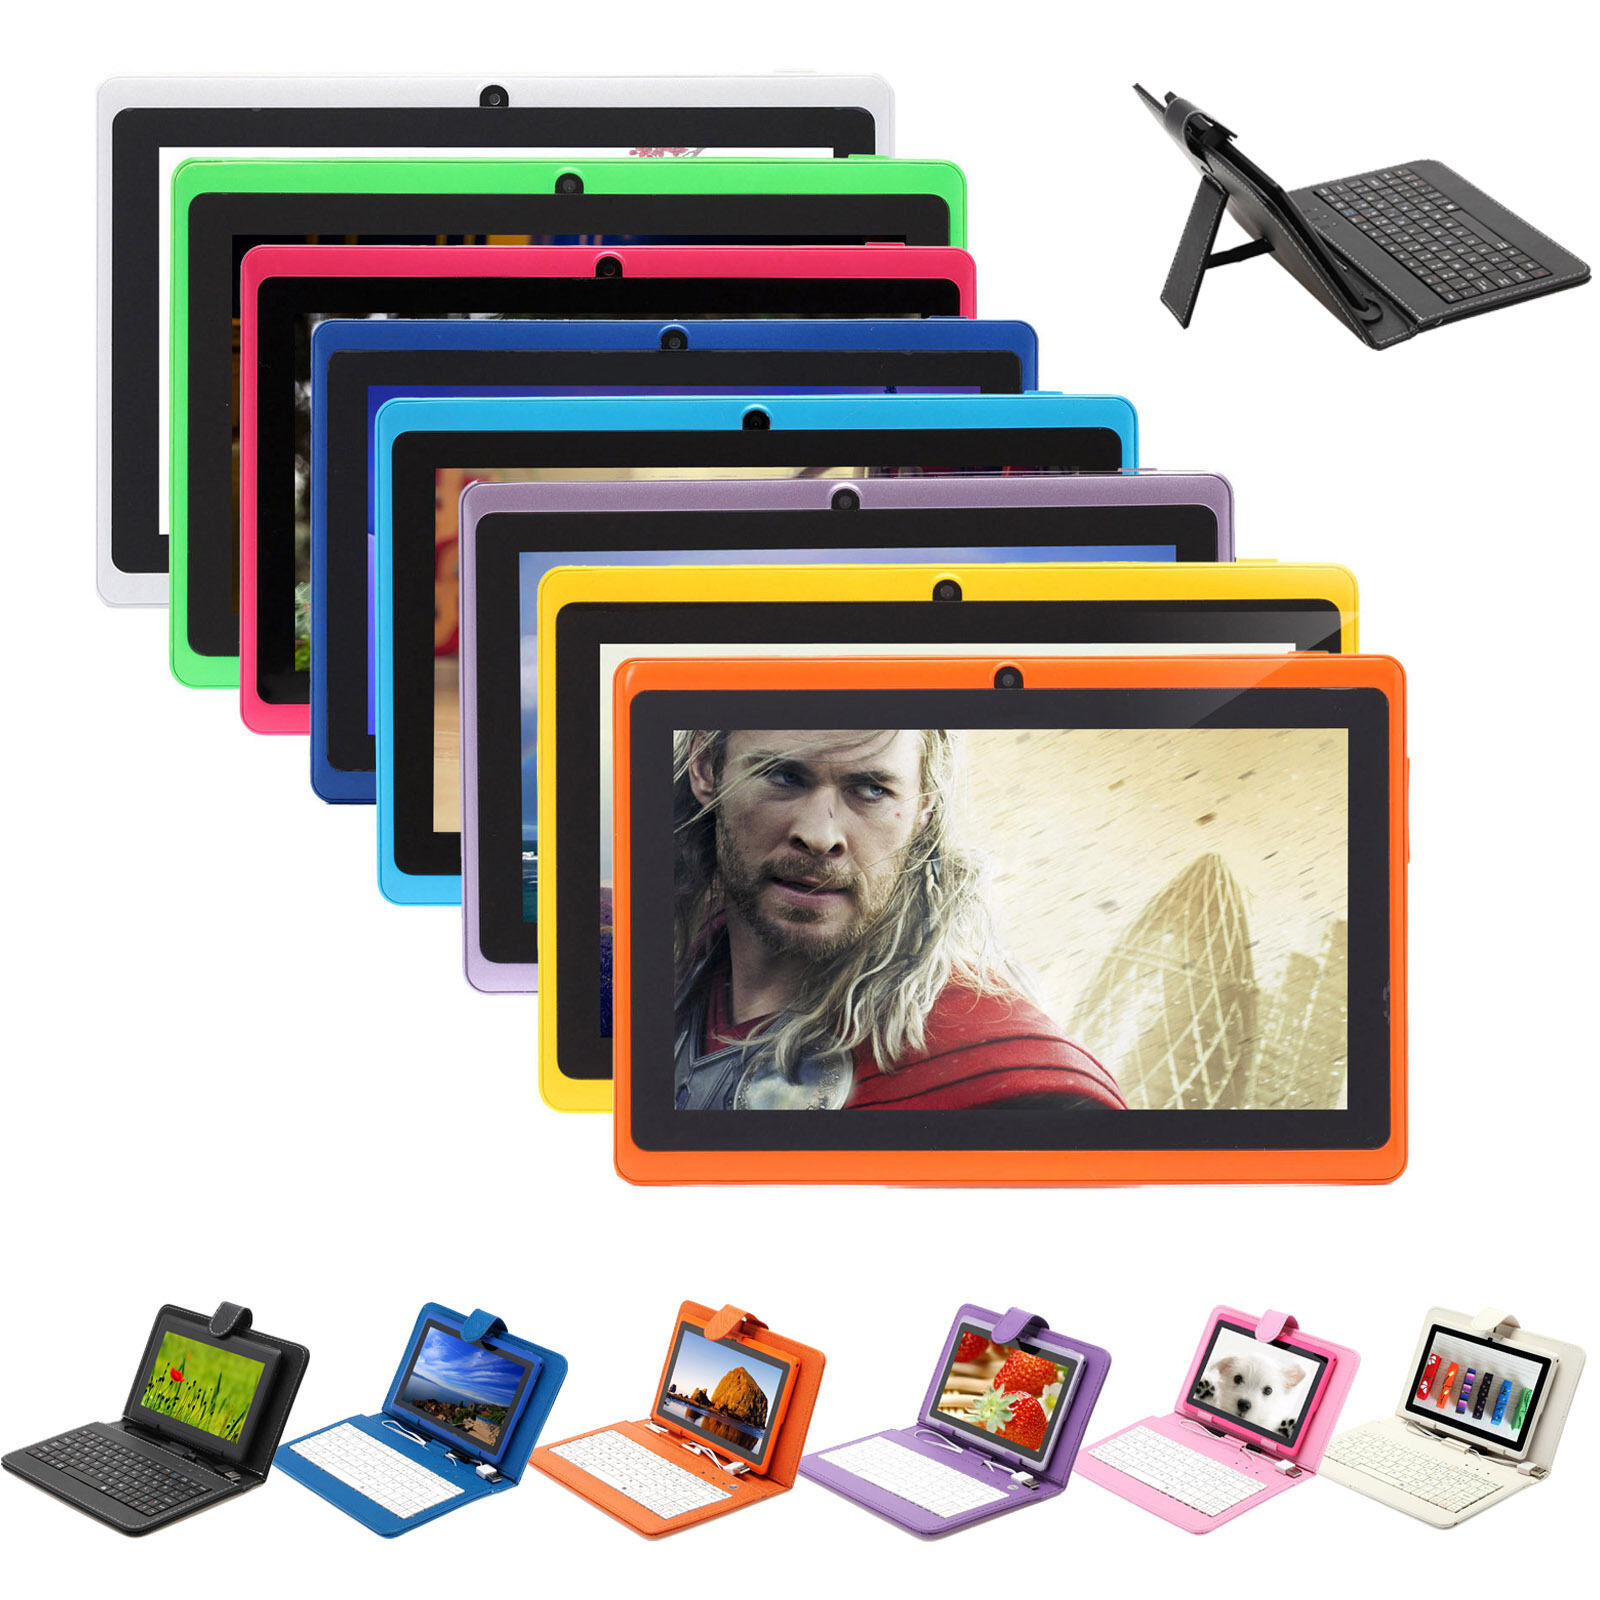 iRULU 7 GMS Capacitive HD New Tablet PC Android 6.0 Quad Core 8GB w/ Keyboard